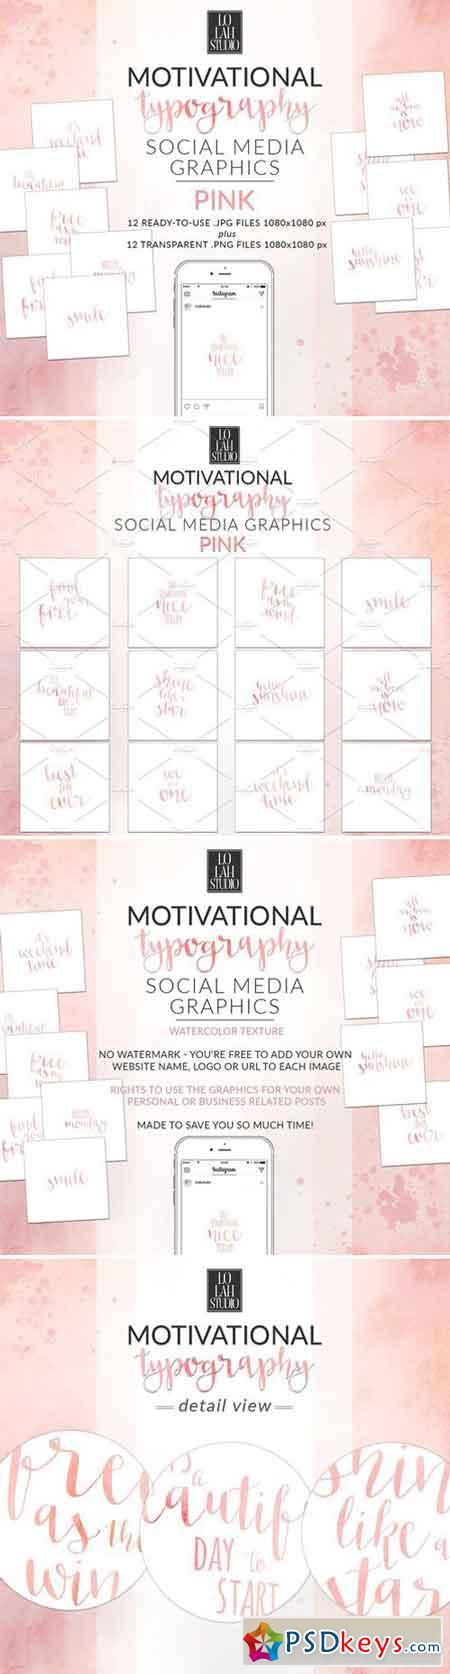 Motivational Typography - PINK 2403897